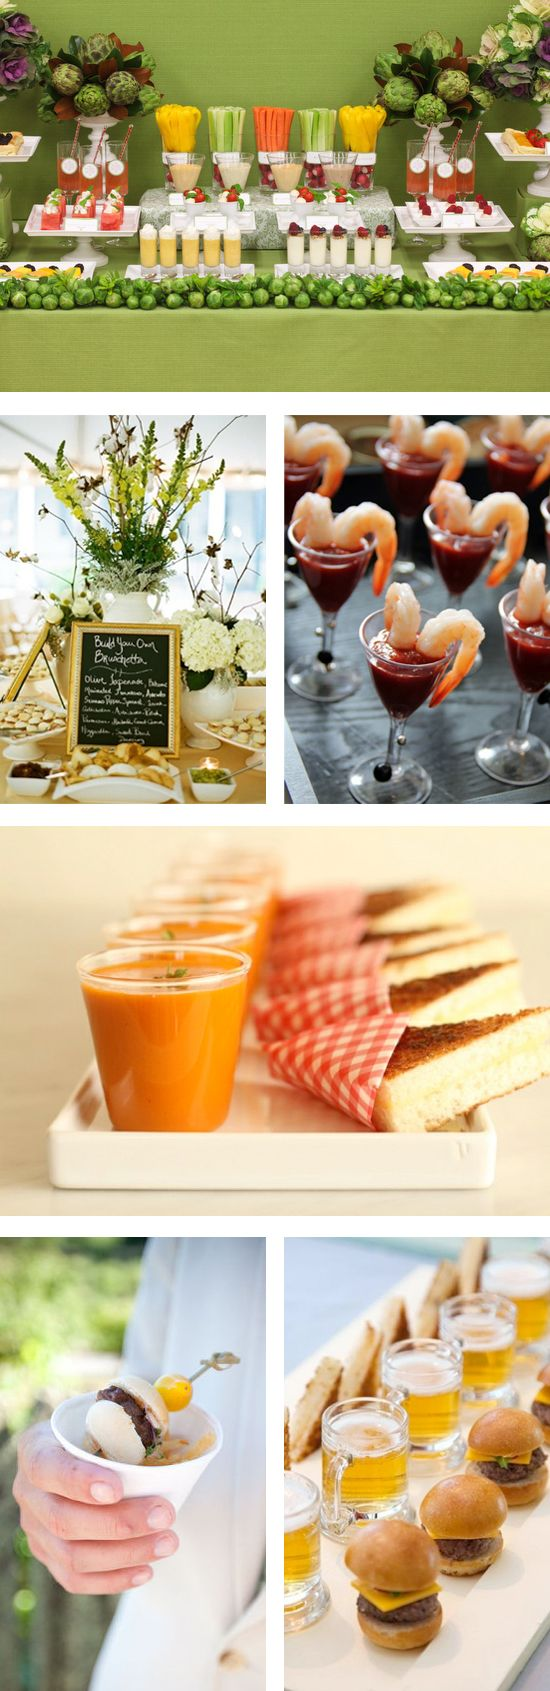 Build your own bruschetta. Did I already pin this? Things We Love - Creative Food Stations - My Wedding Reception Ideas | Blog